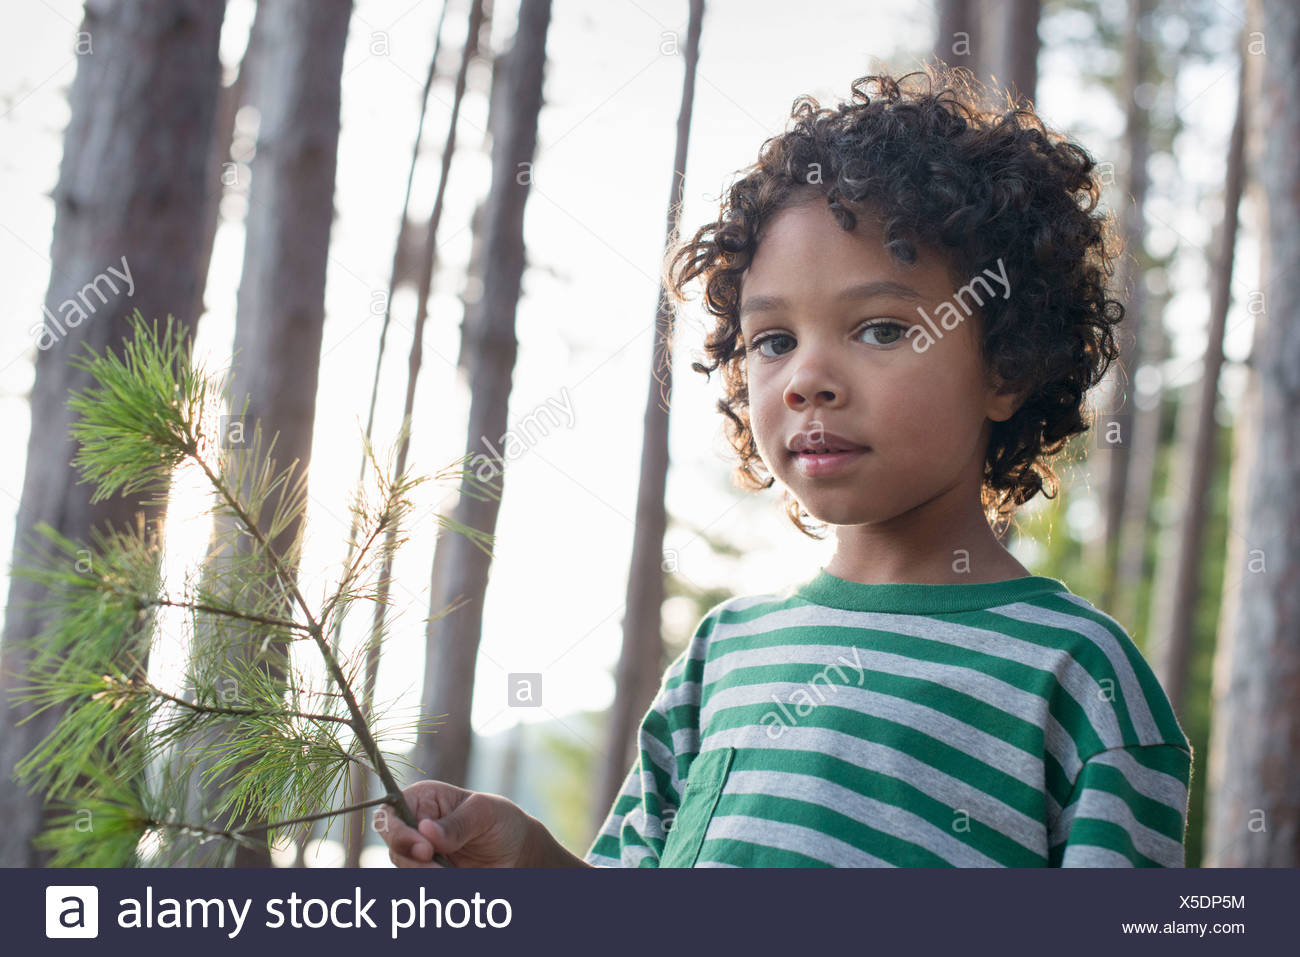 Trees on the shores of a lake. A child standing among the trees, holding a branch with yellow pine needles. - Stock Image